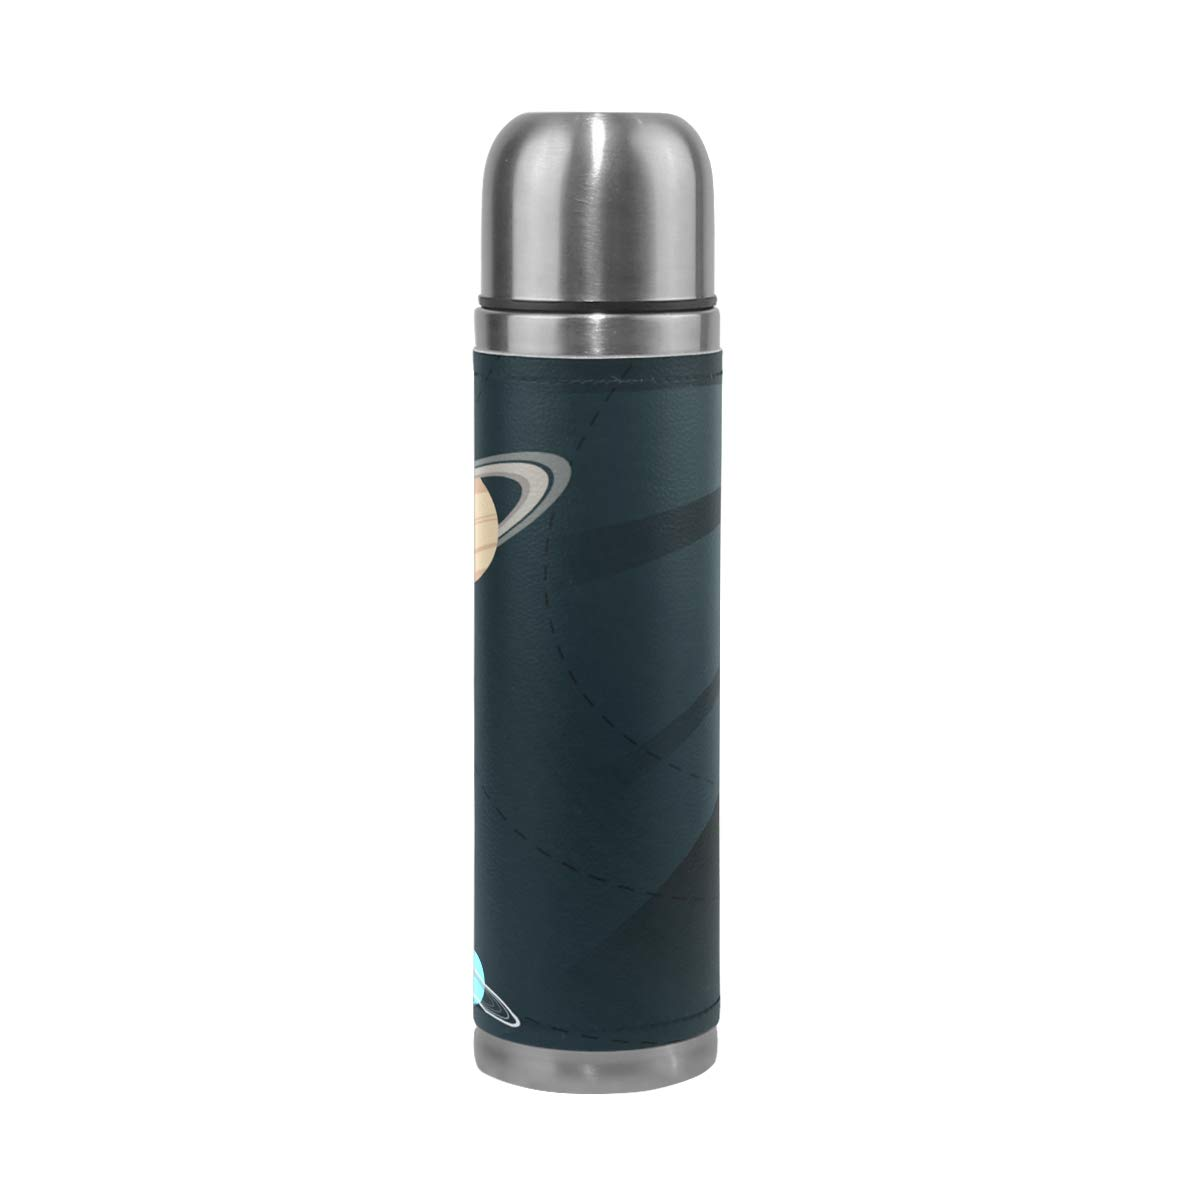 OuLian Thermos Solar System Cycling Insulated Stainless Steel Water Bottle Leak Proof Thermos Leather Cover 17 Oz